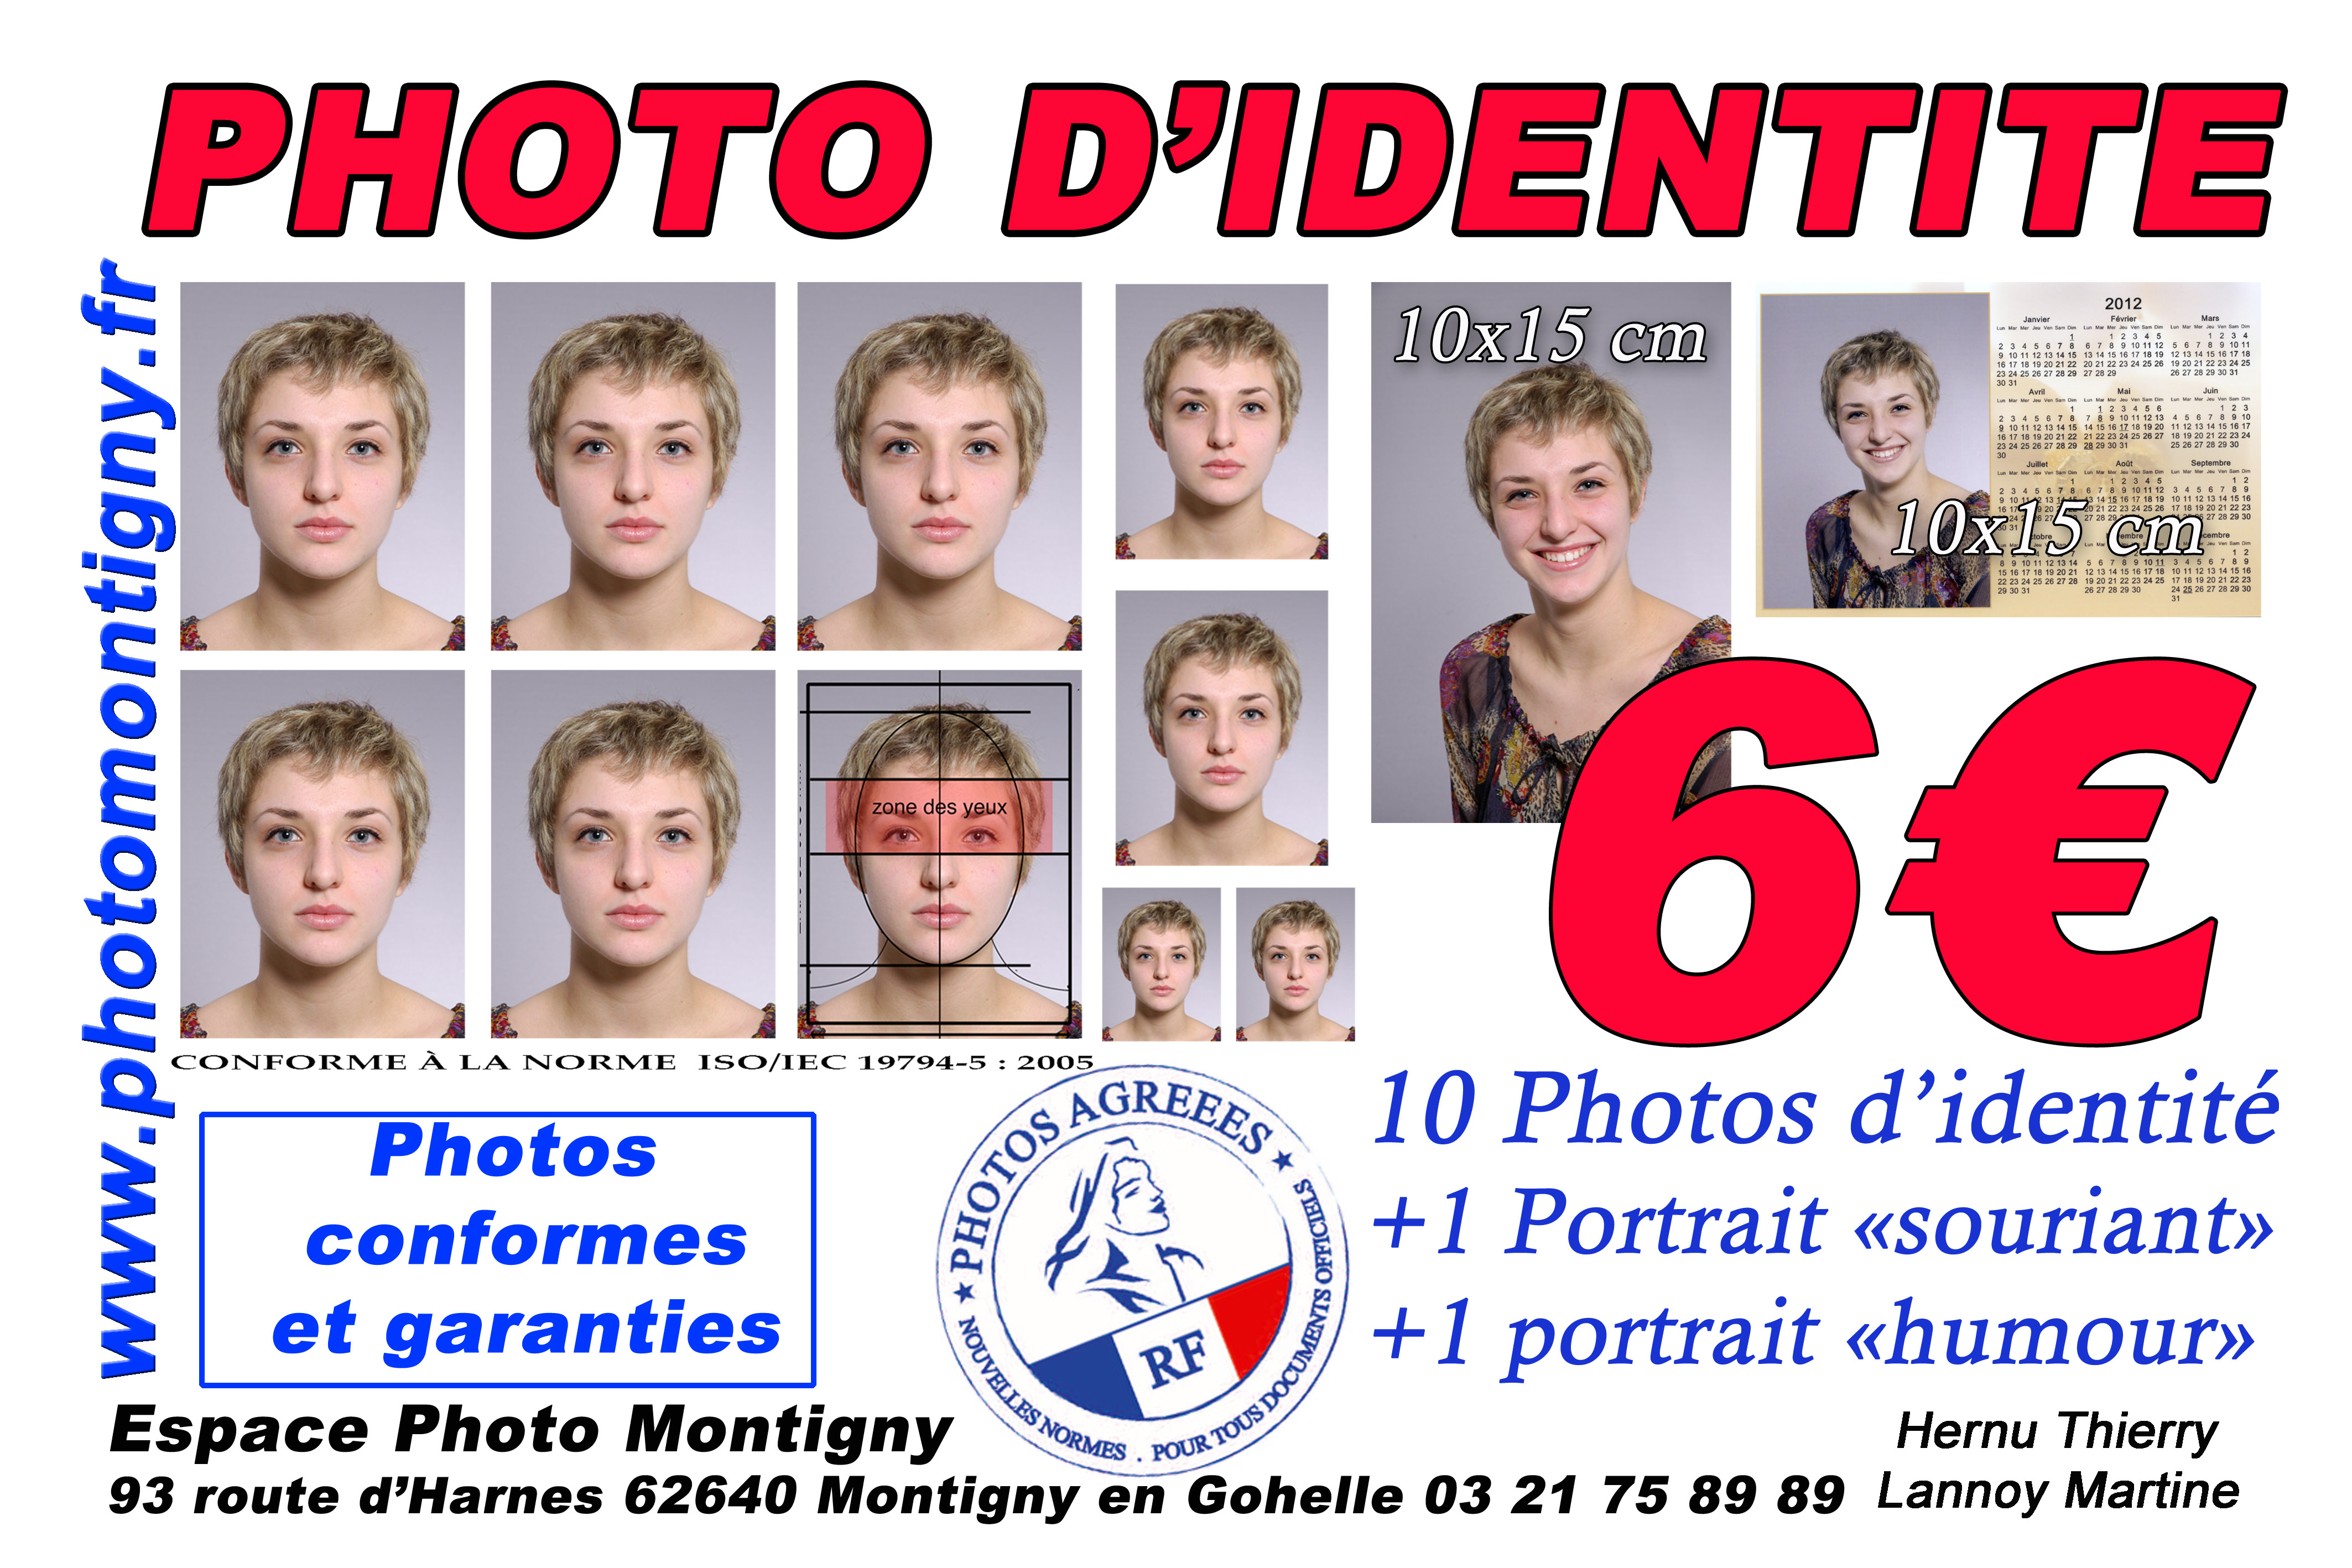 photo identite photomontigny maitre artisan